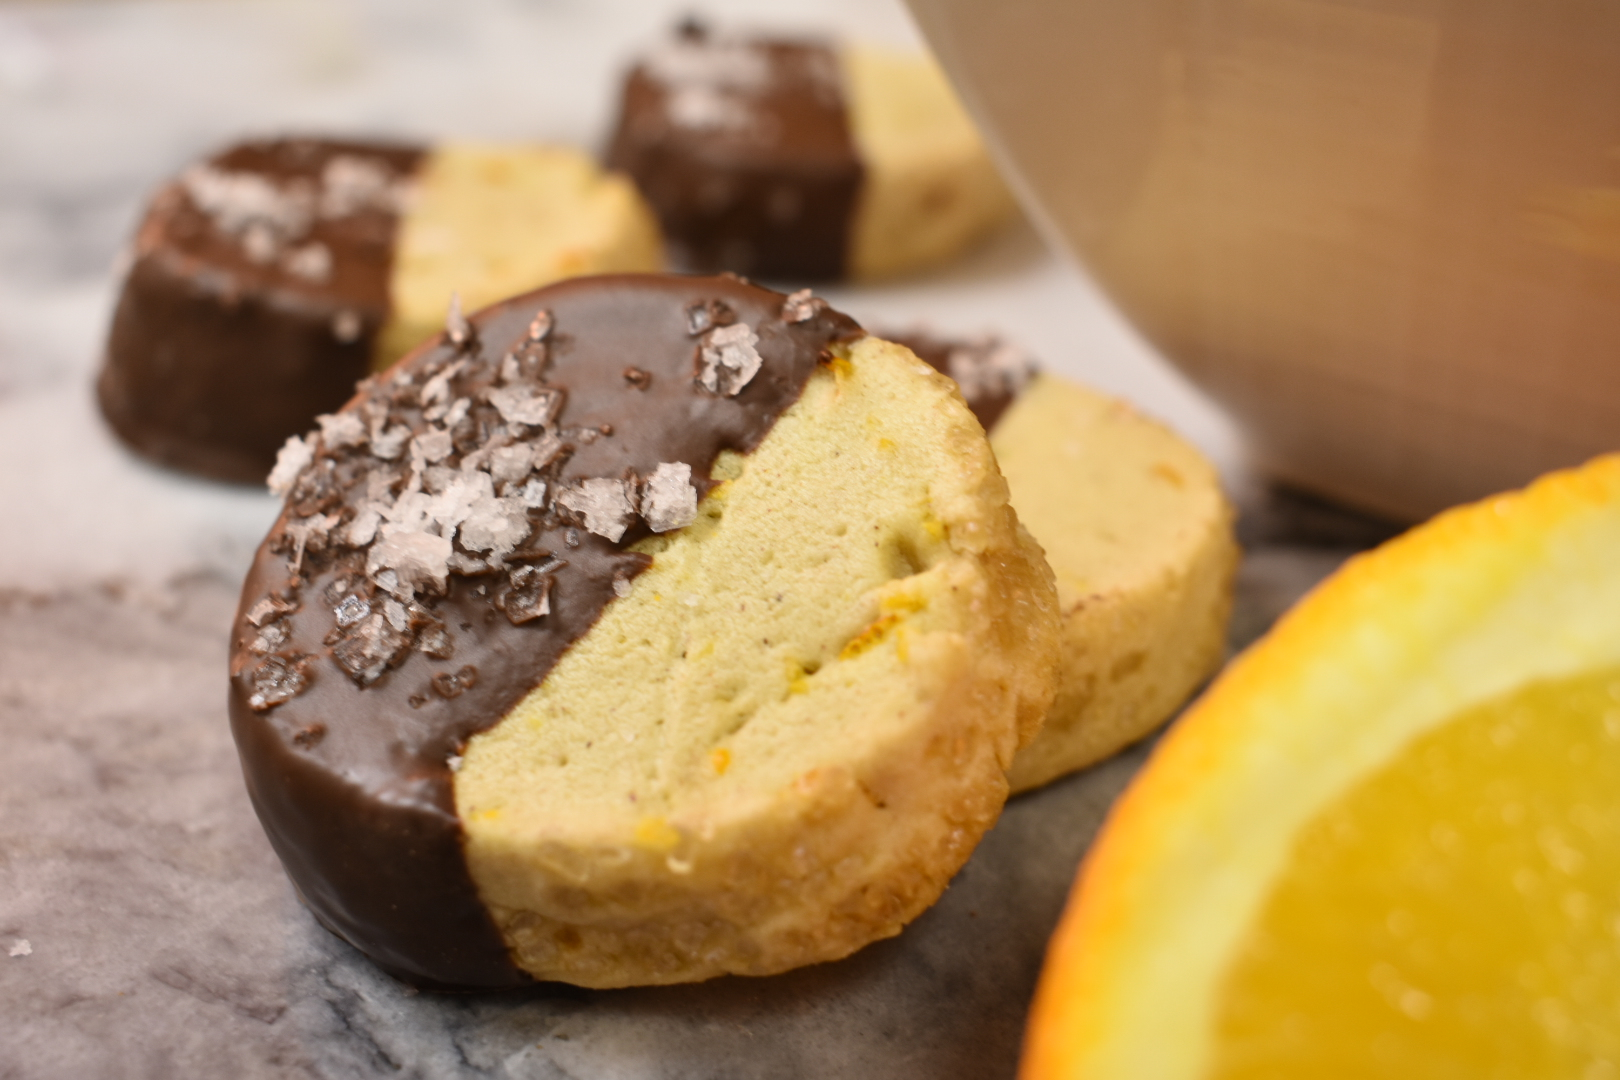 Chocolate orange shortbread cookies